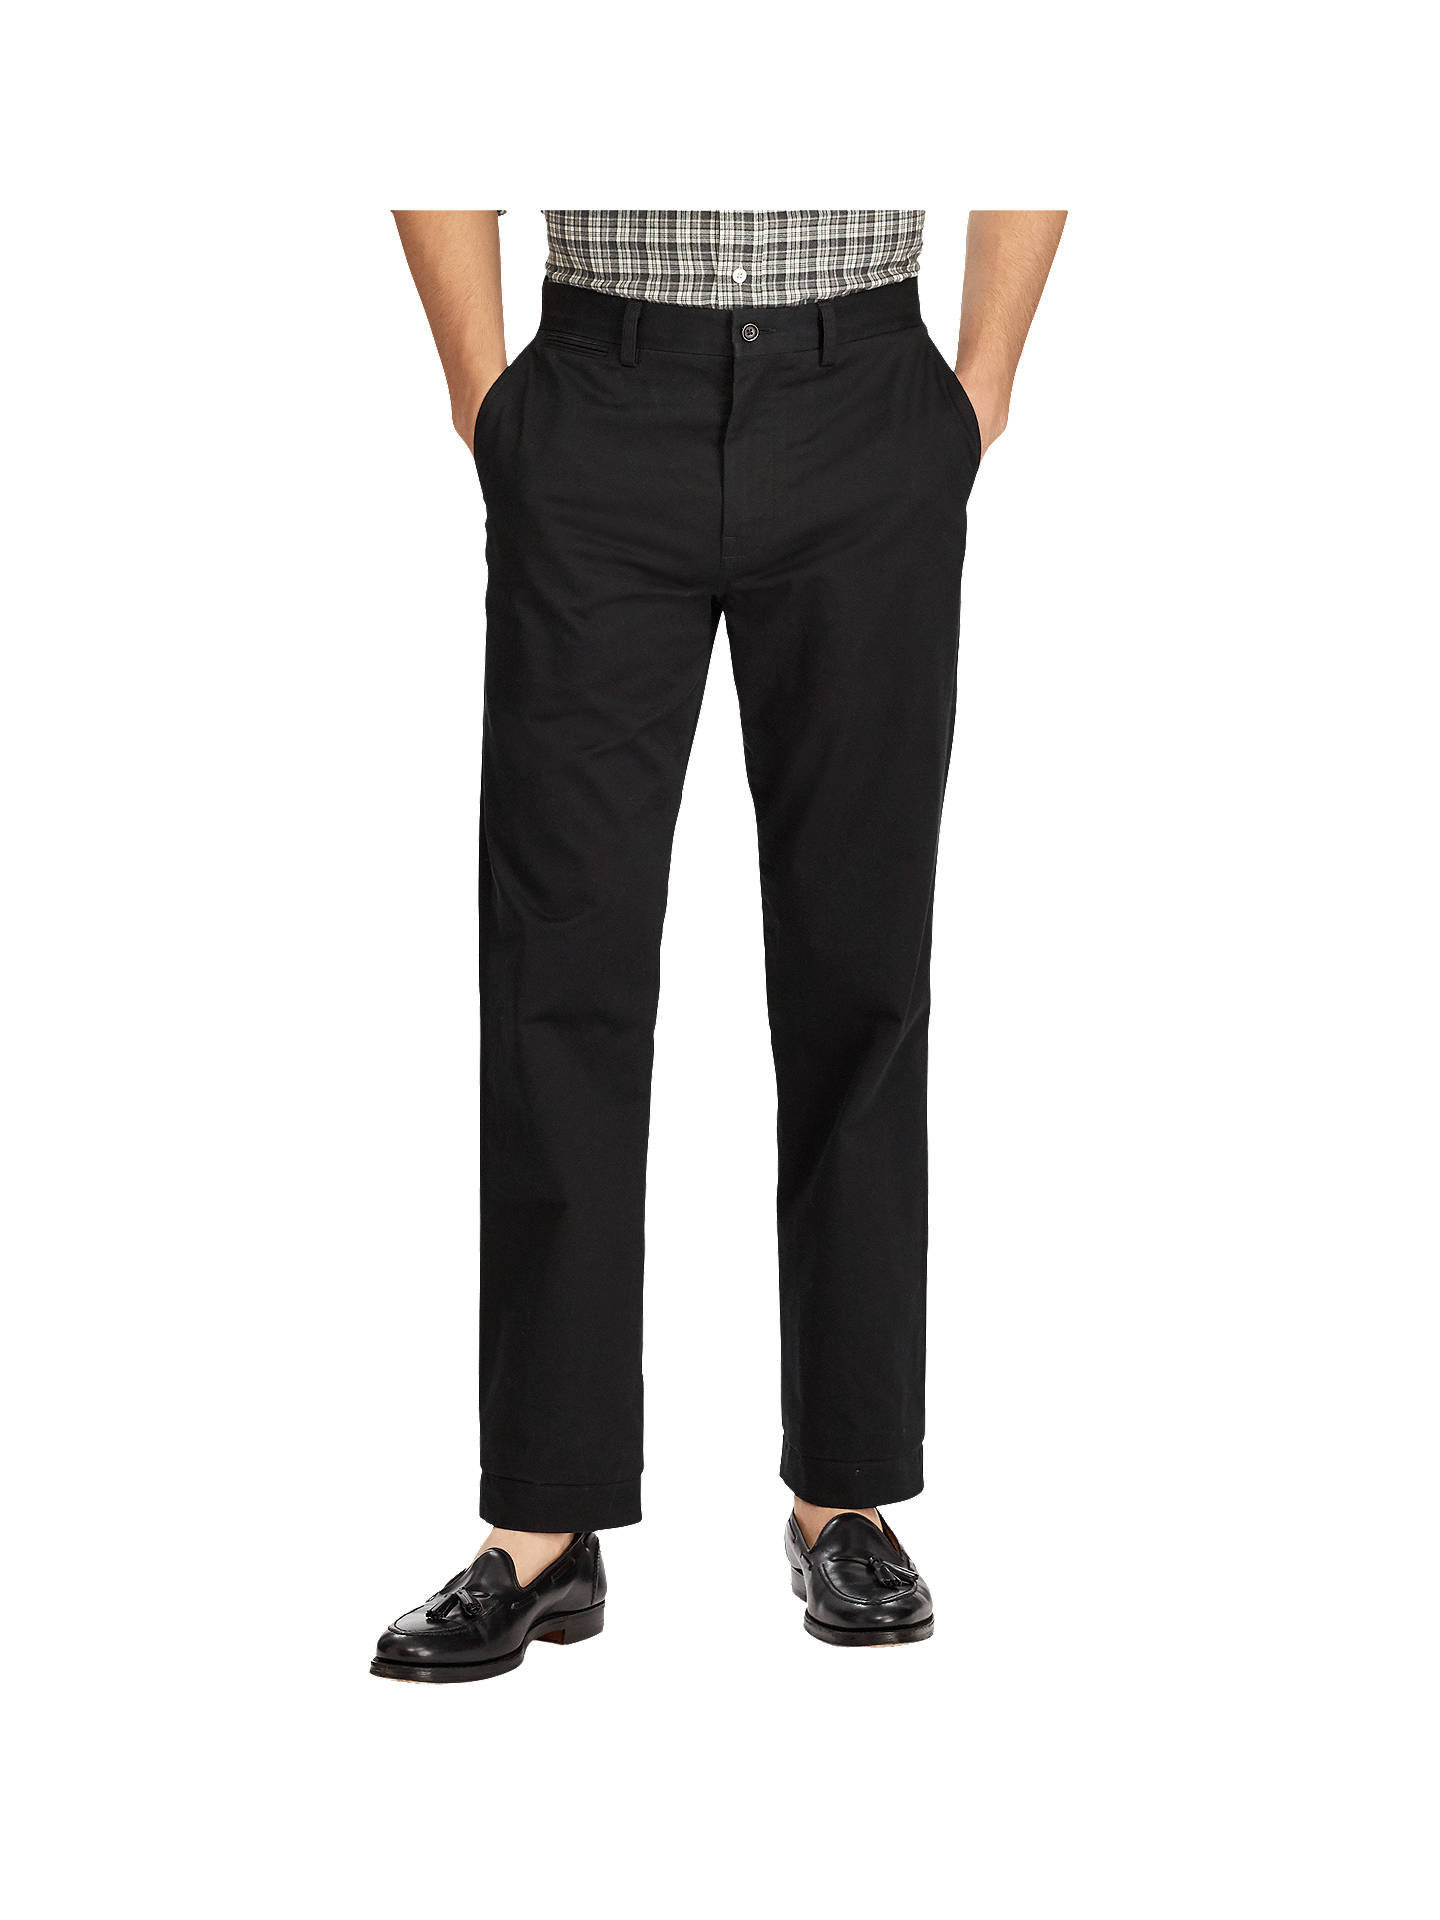 c1302be63 Buy Polo Ralph Lauren Stretch Slim Fit Twill Chinos